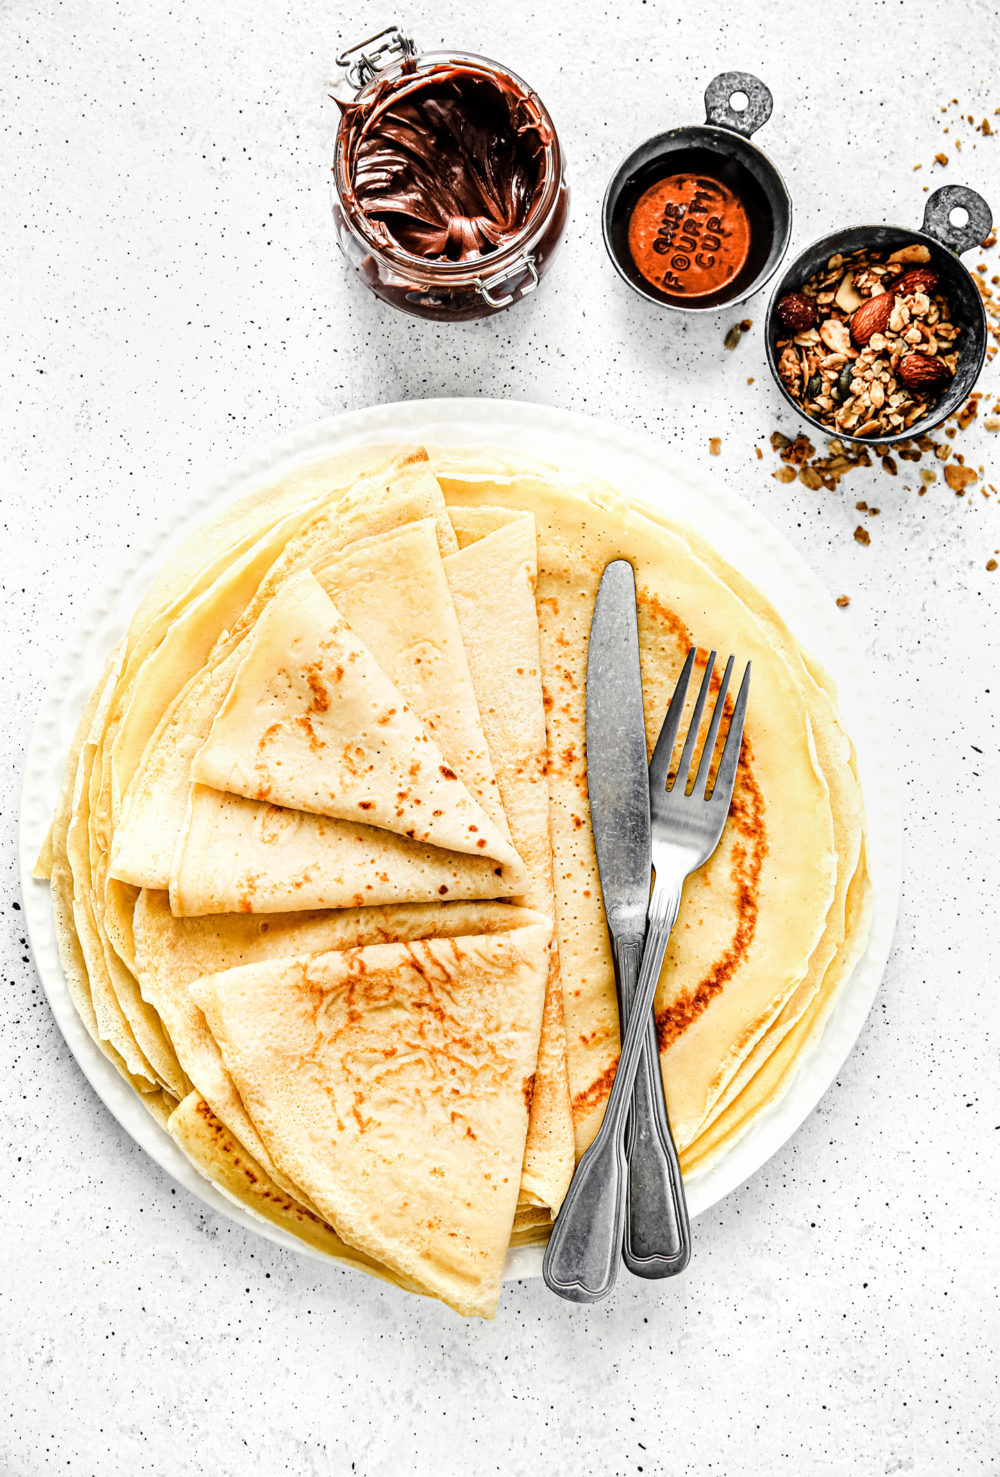 Easy simply crepes recipe